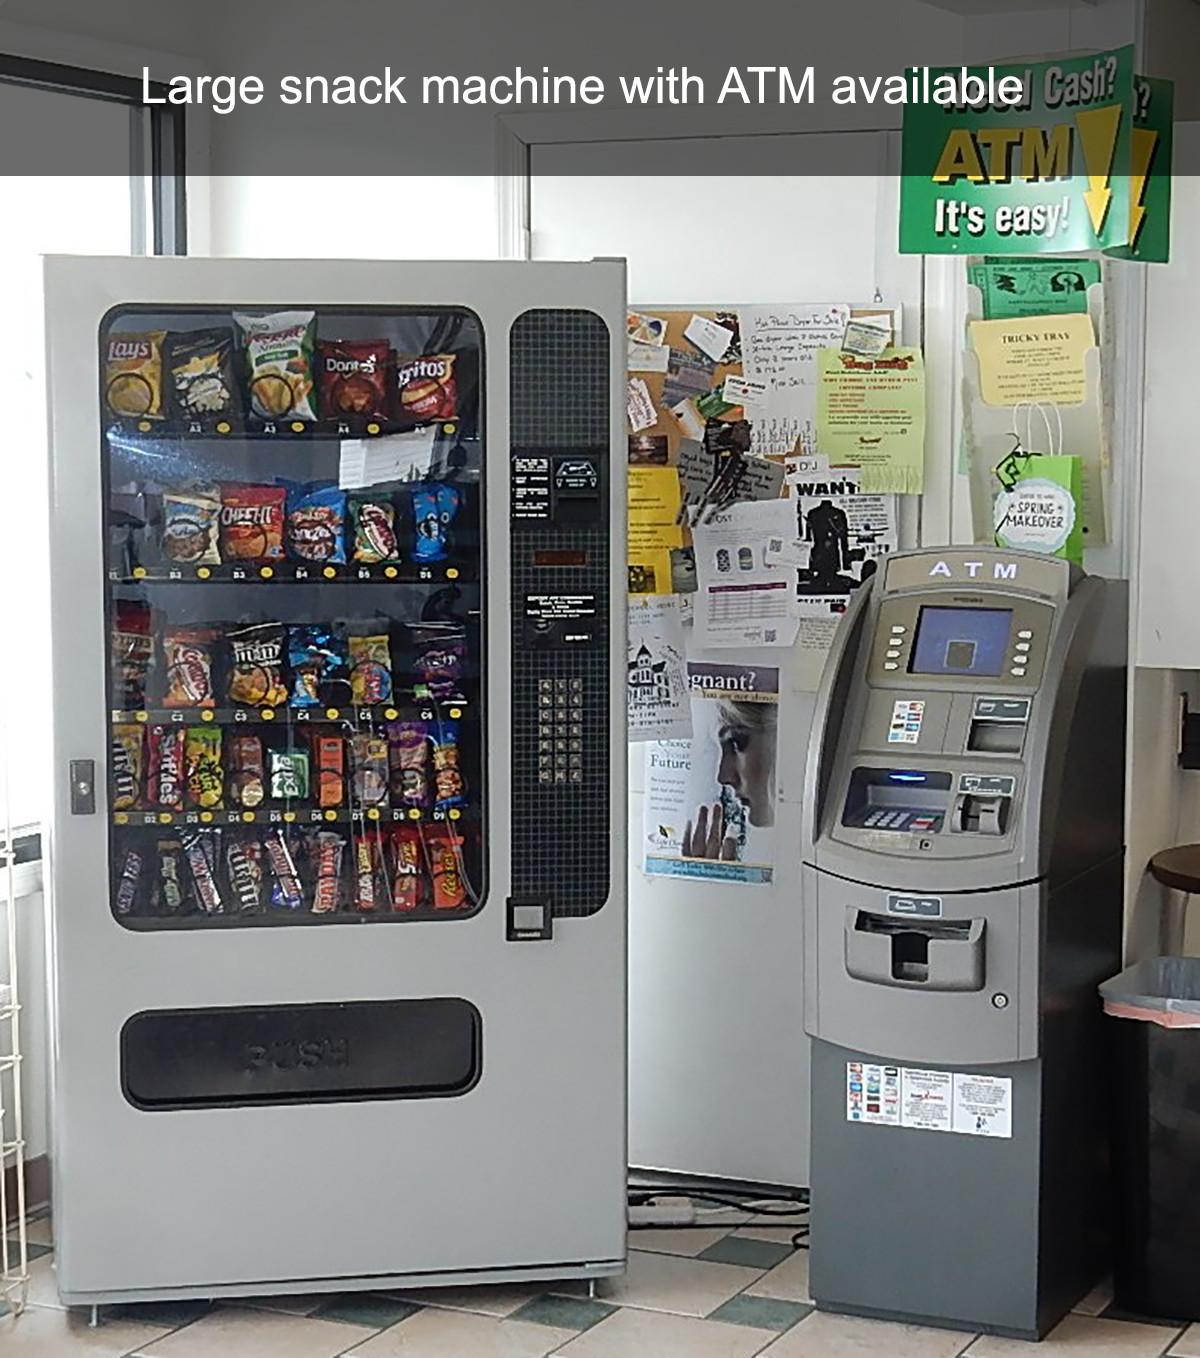 Large snack machine with ATM available